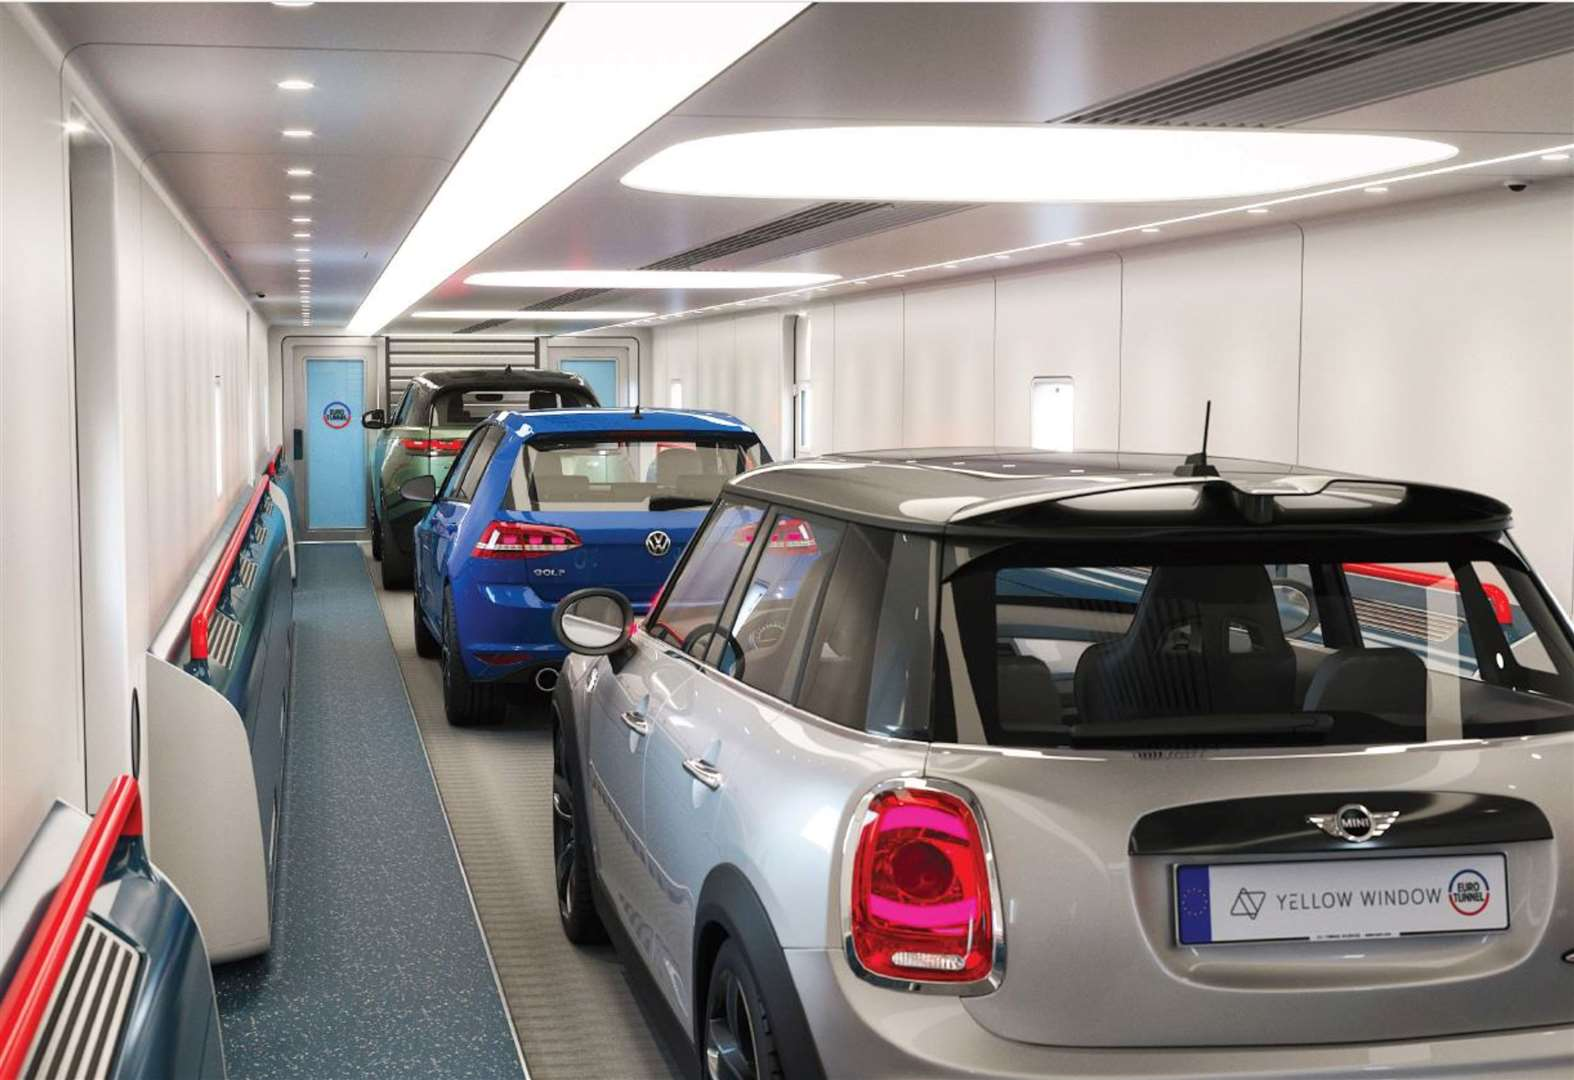 This is how the Eurotunnel passenger shuttles could look once revamped